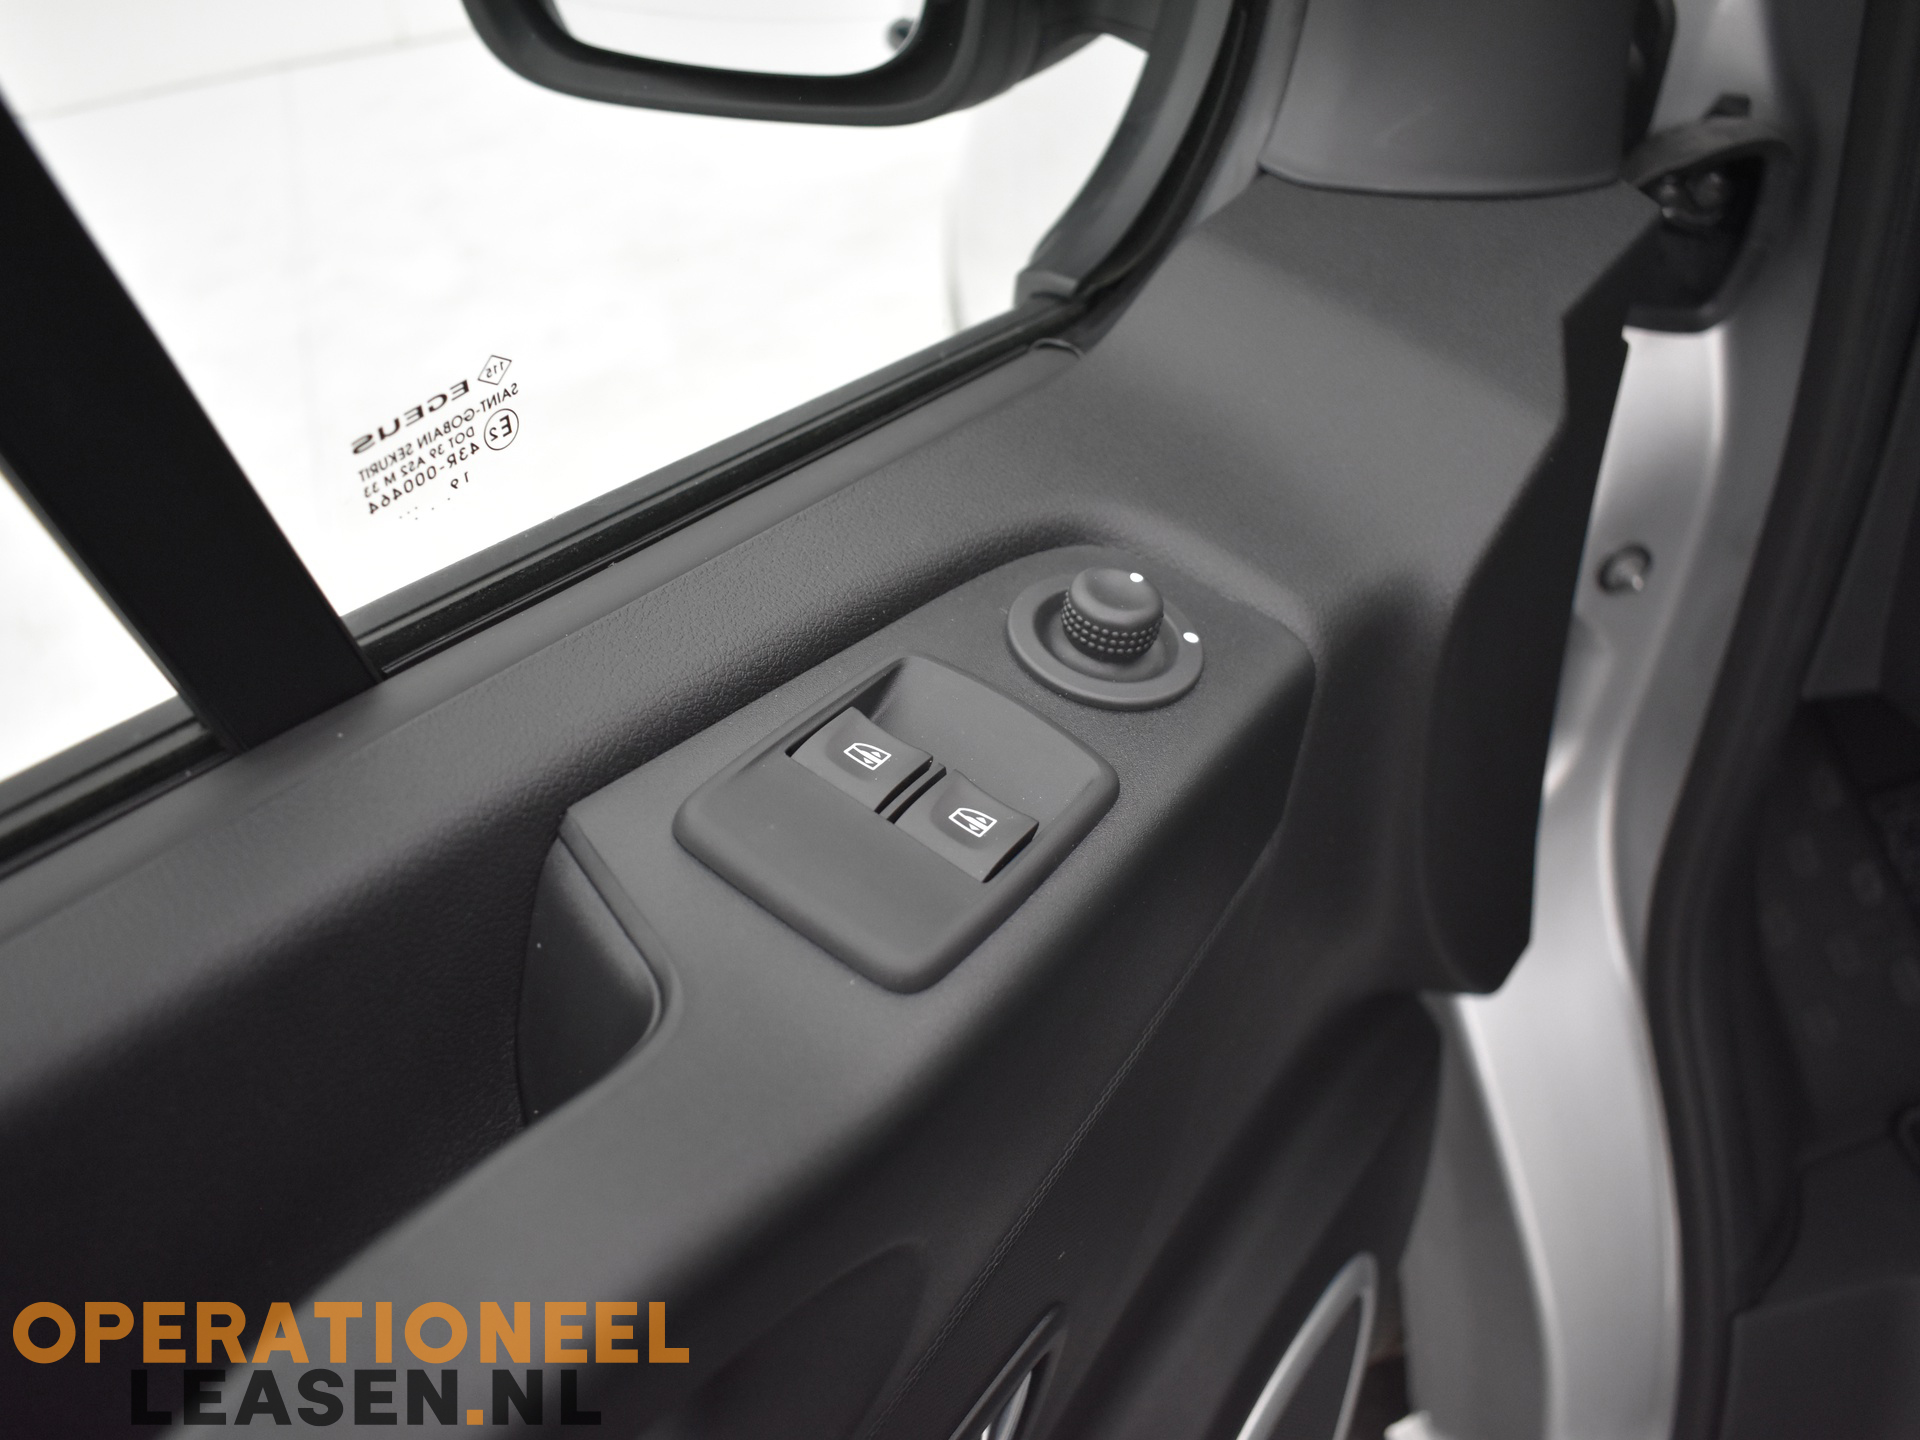 Operational lease Renault master traffic-8